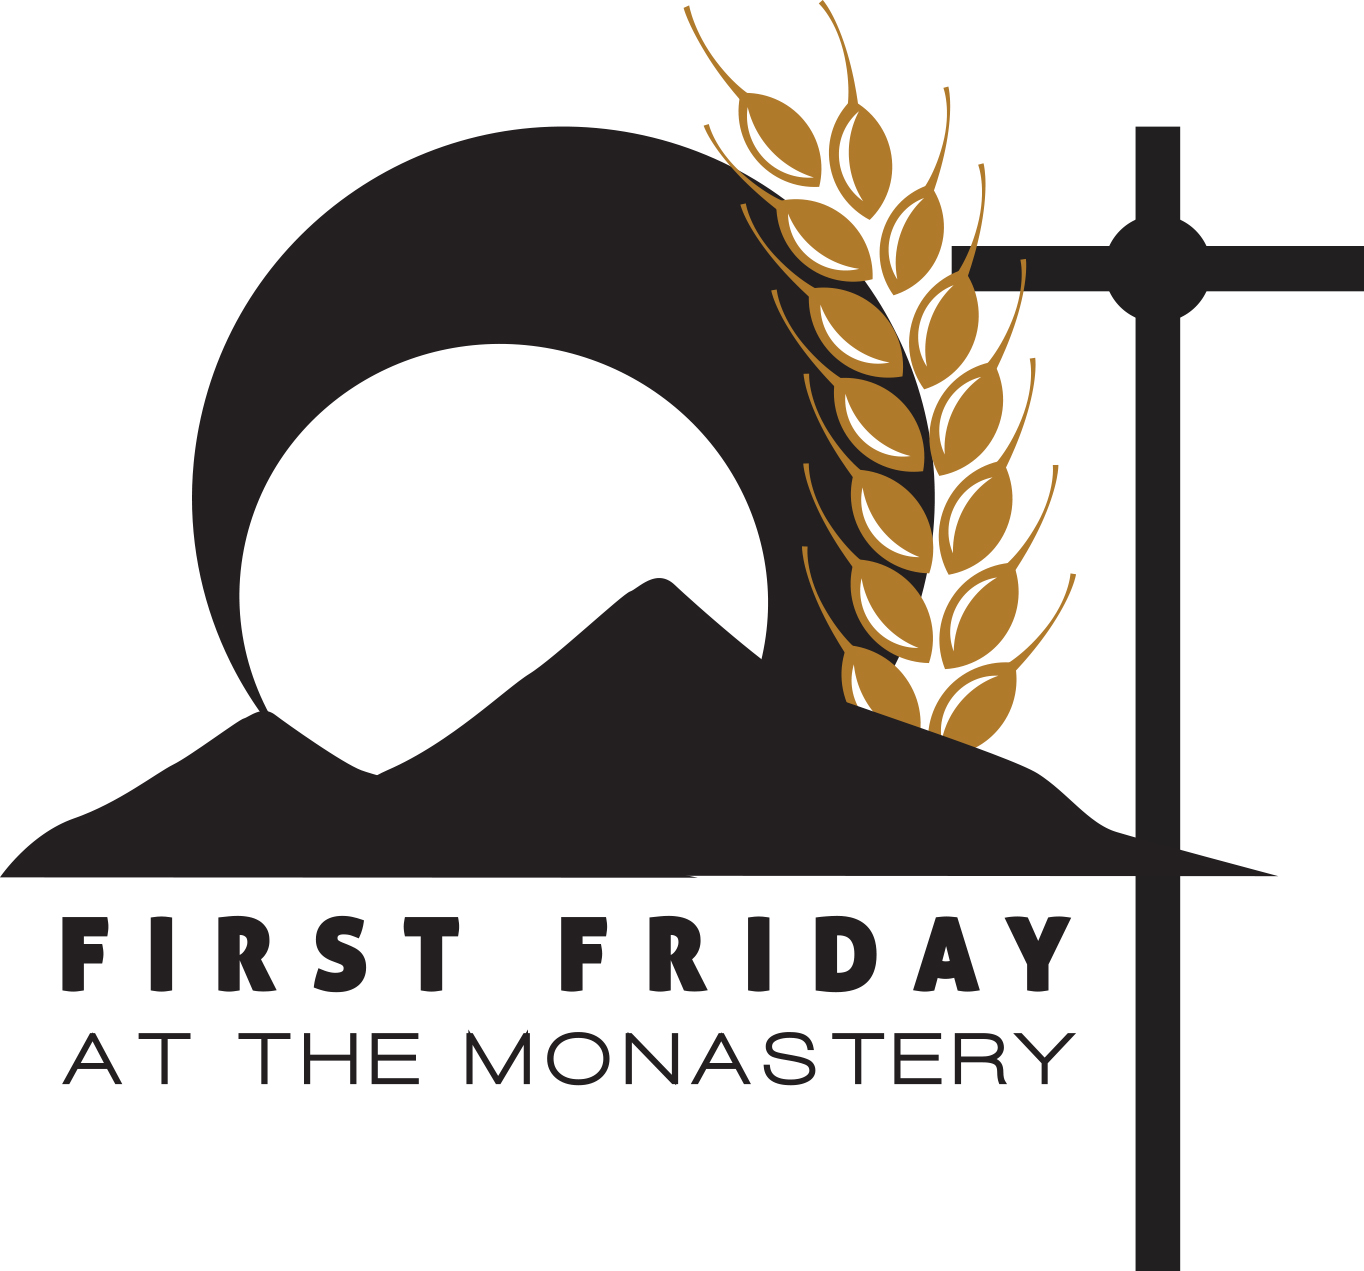 First Friday at the Monastery